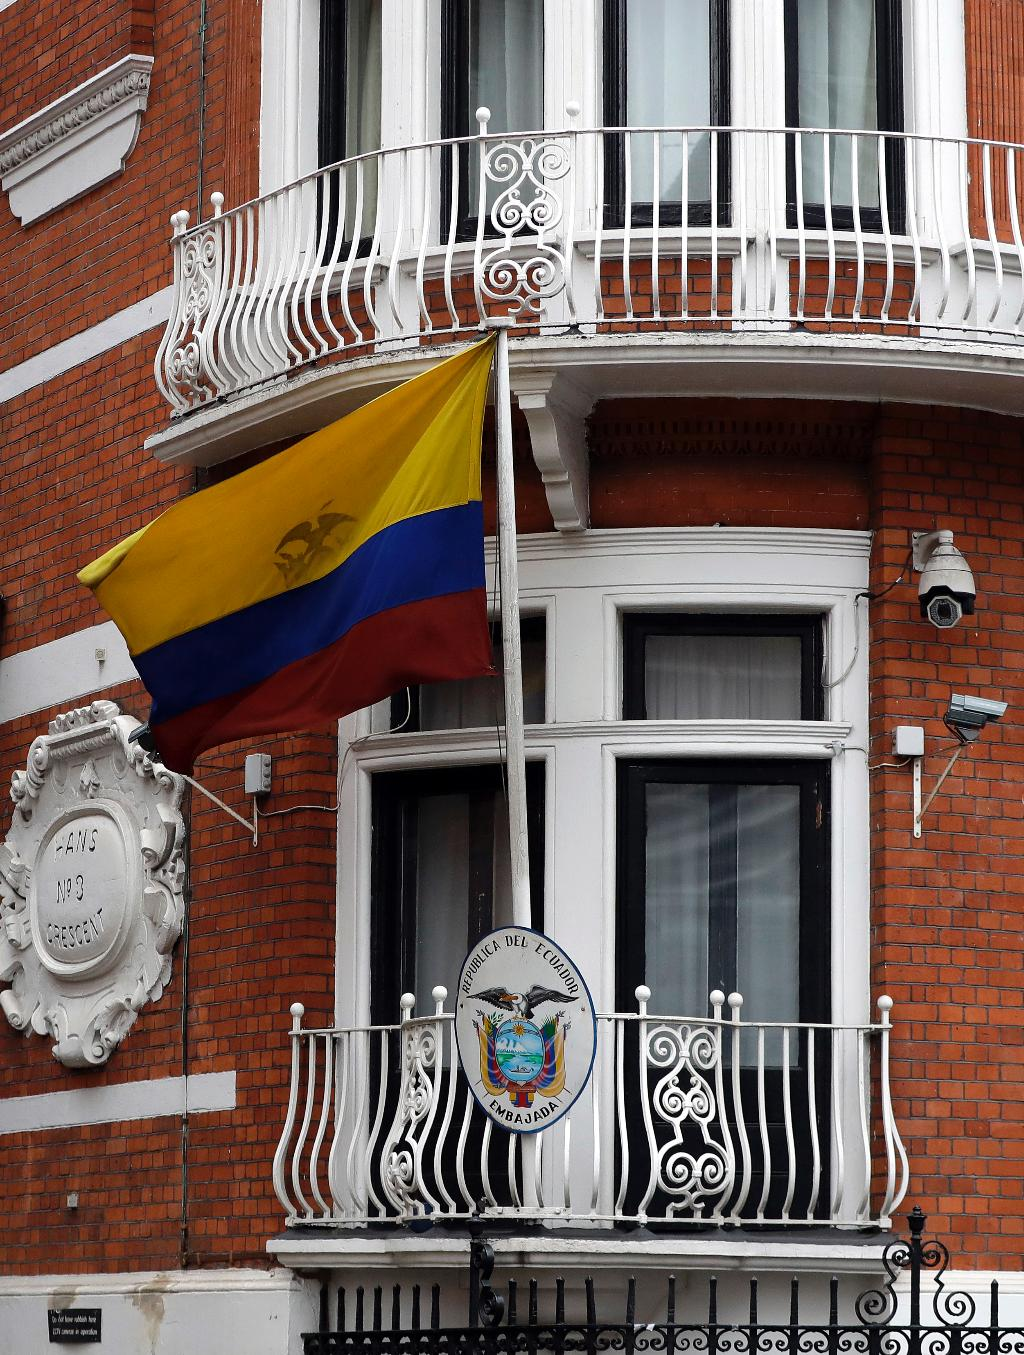 Ecuadorians say Assange's time in London embassy may be nearing end